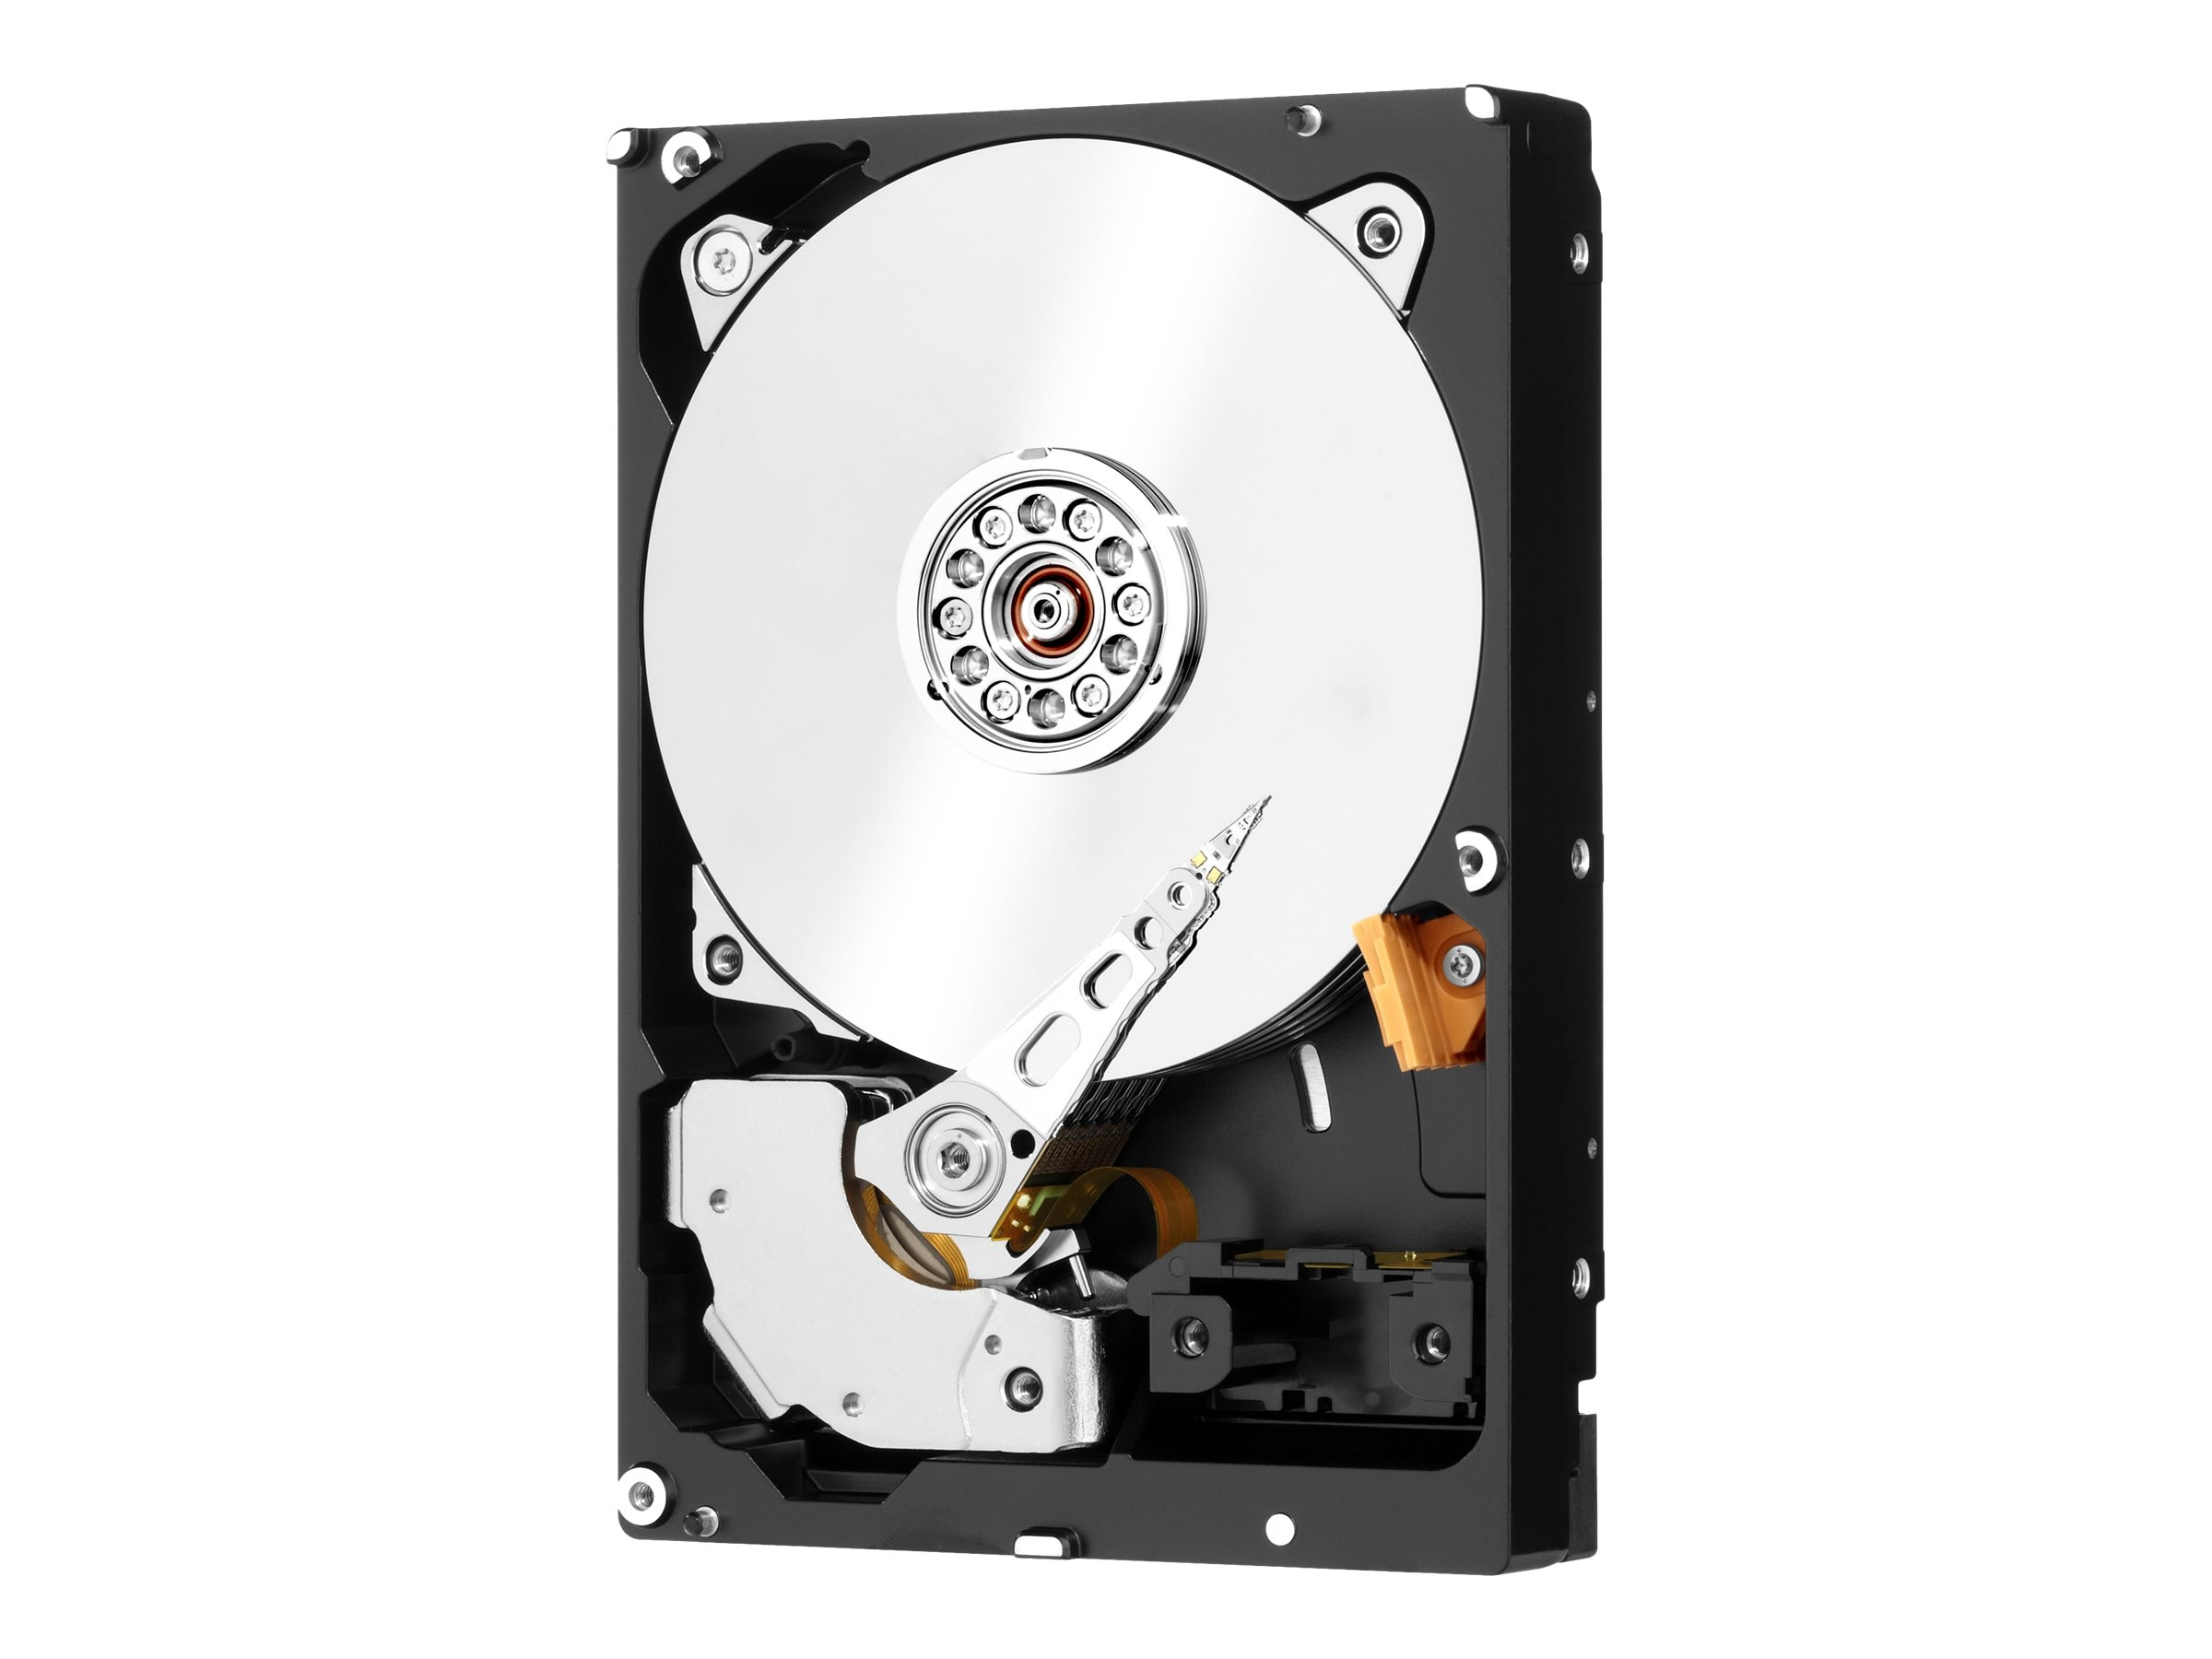 WD 3TB WD Red Pro SATA 6Gb s 3.5 Internal Hard Drive, WD3001FFSX, 17590271, Hard Drives - Internal